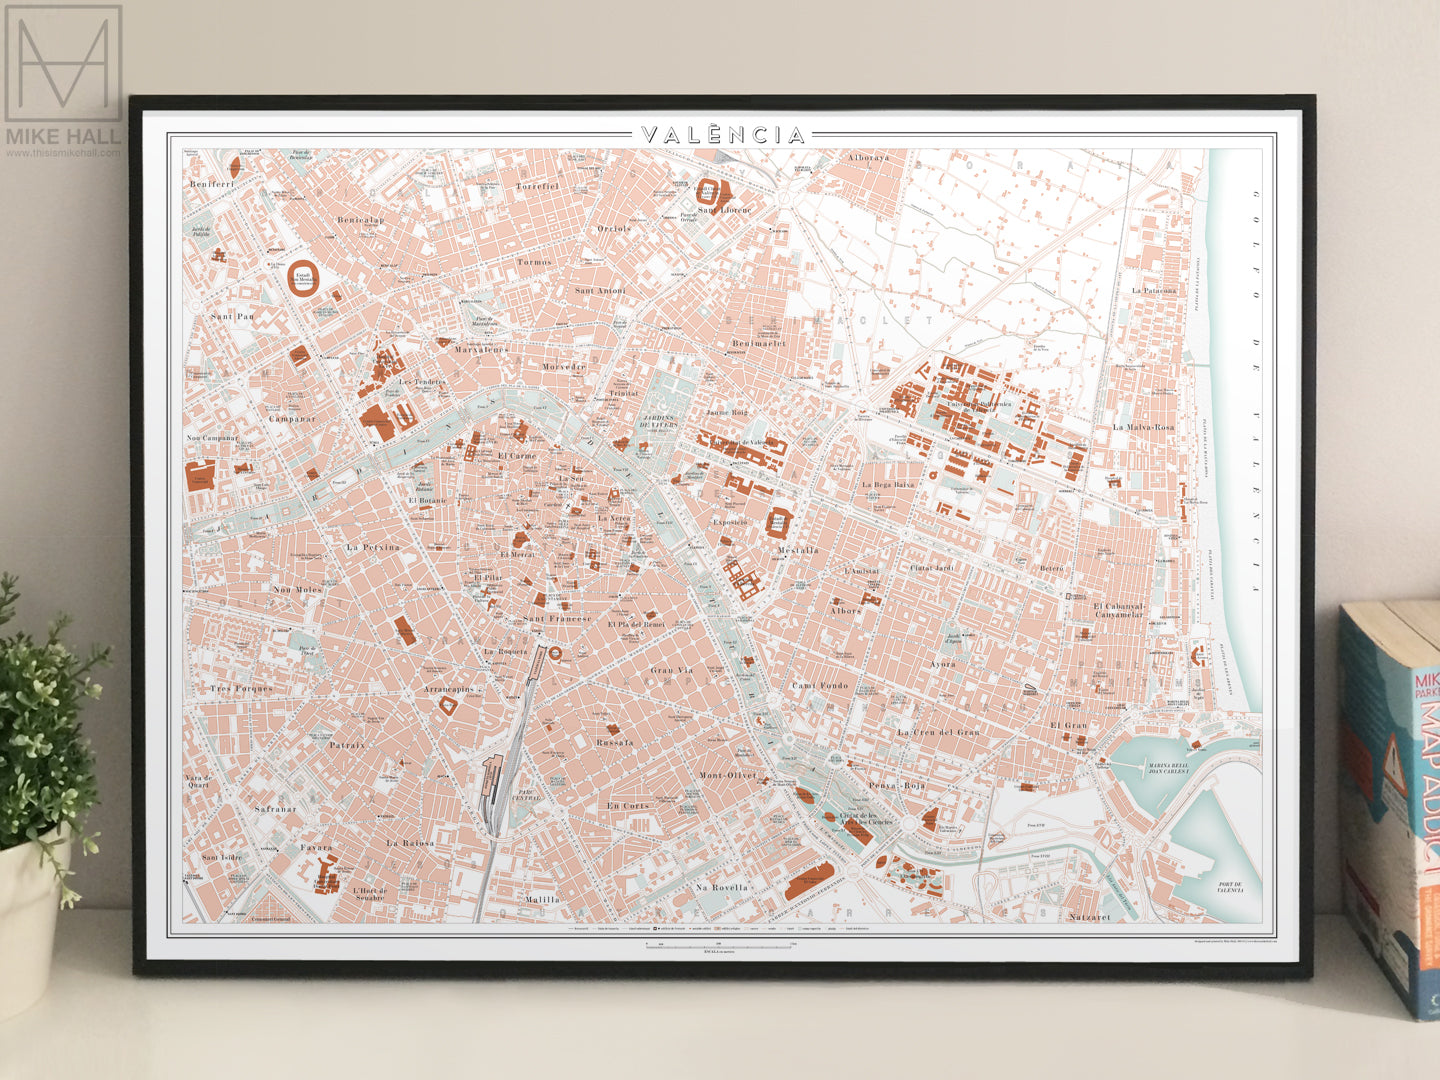 Valencia Spain city map giclee print Mike Hall maps illustration